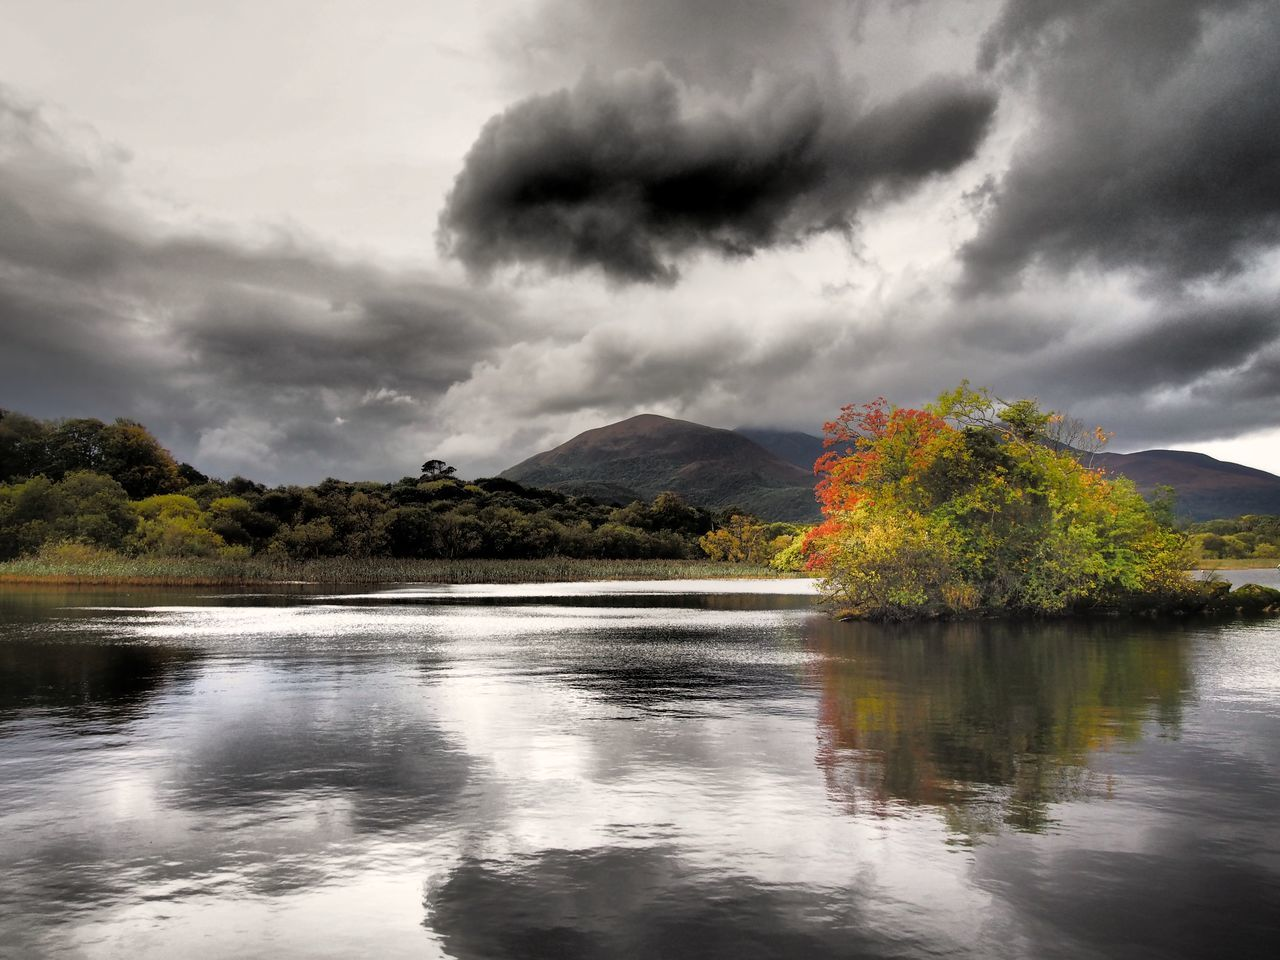 Lough Leane @ Ross Castle Killarney  Ireland Reflection Lake Lake View Lough Leane Lough EyeEm Nature Lover Tranquility Autumn Colours Autumn Sky Travel Destinations OutdoorsBeauty In Nature Dramatic Sky Scenics Lake Landscapes Landscape